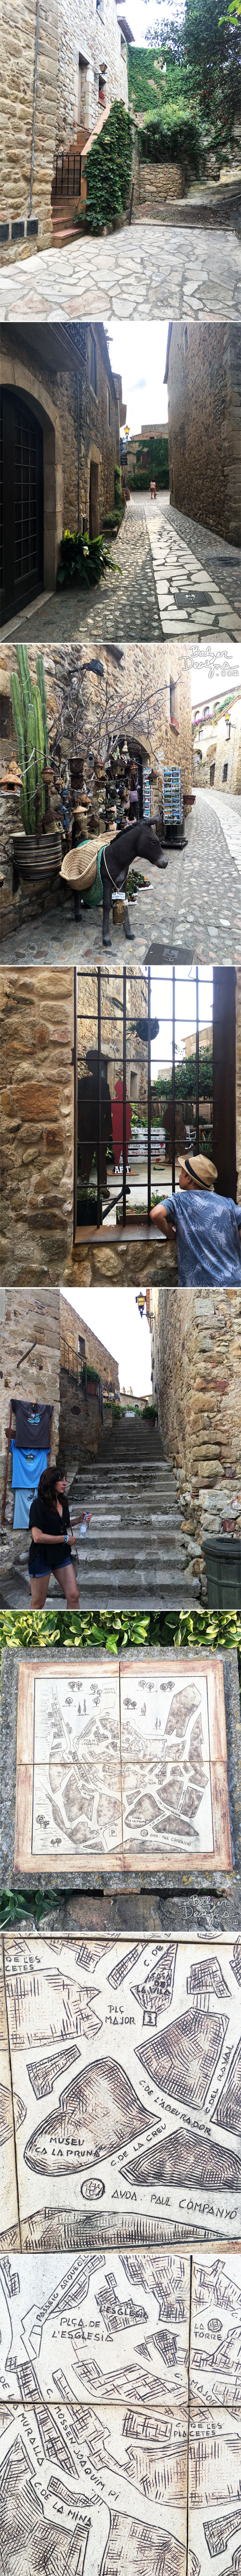 From the Balzer Designs Blog:Medieval Village: Peratallada